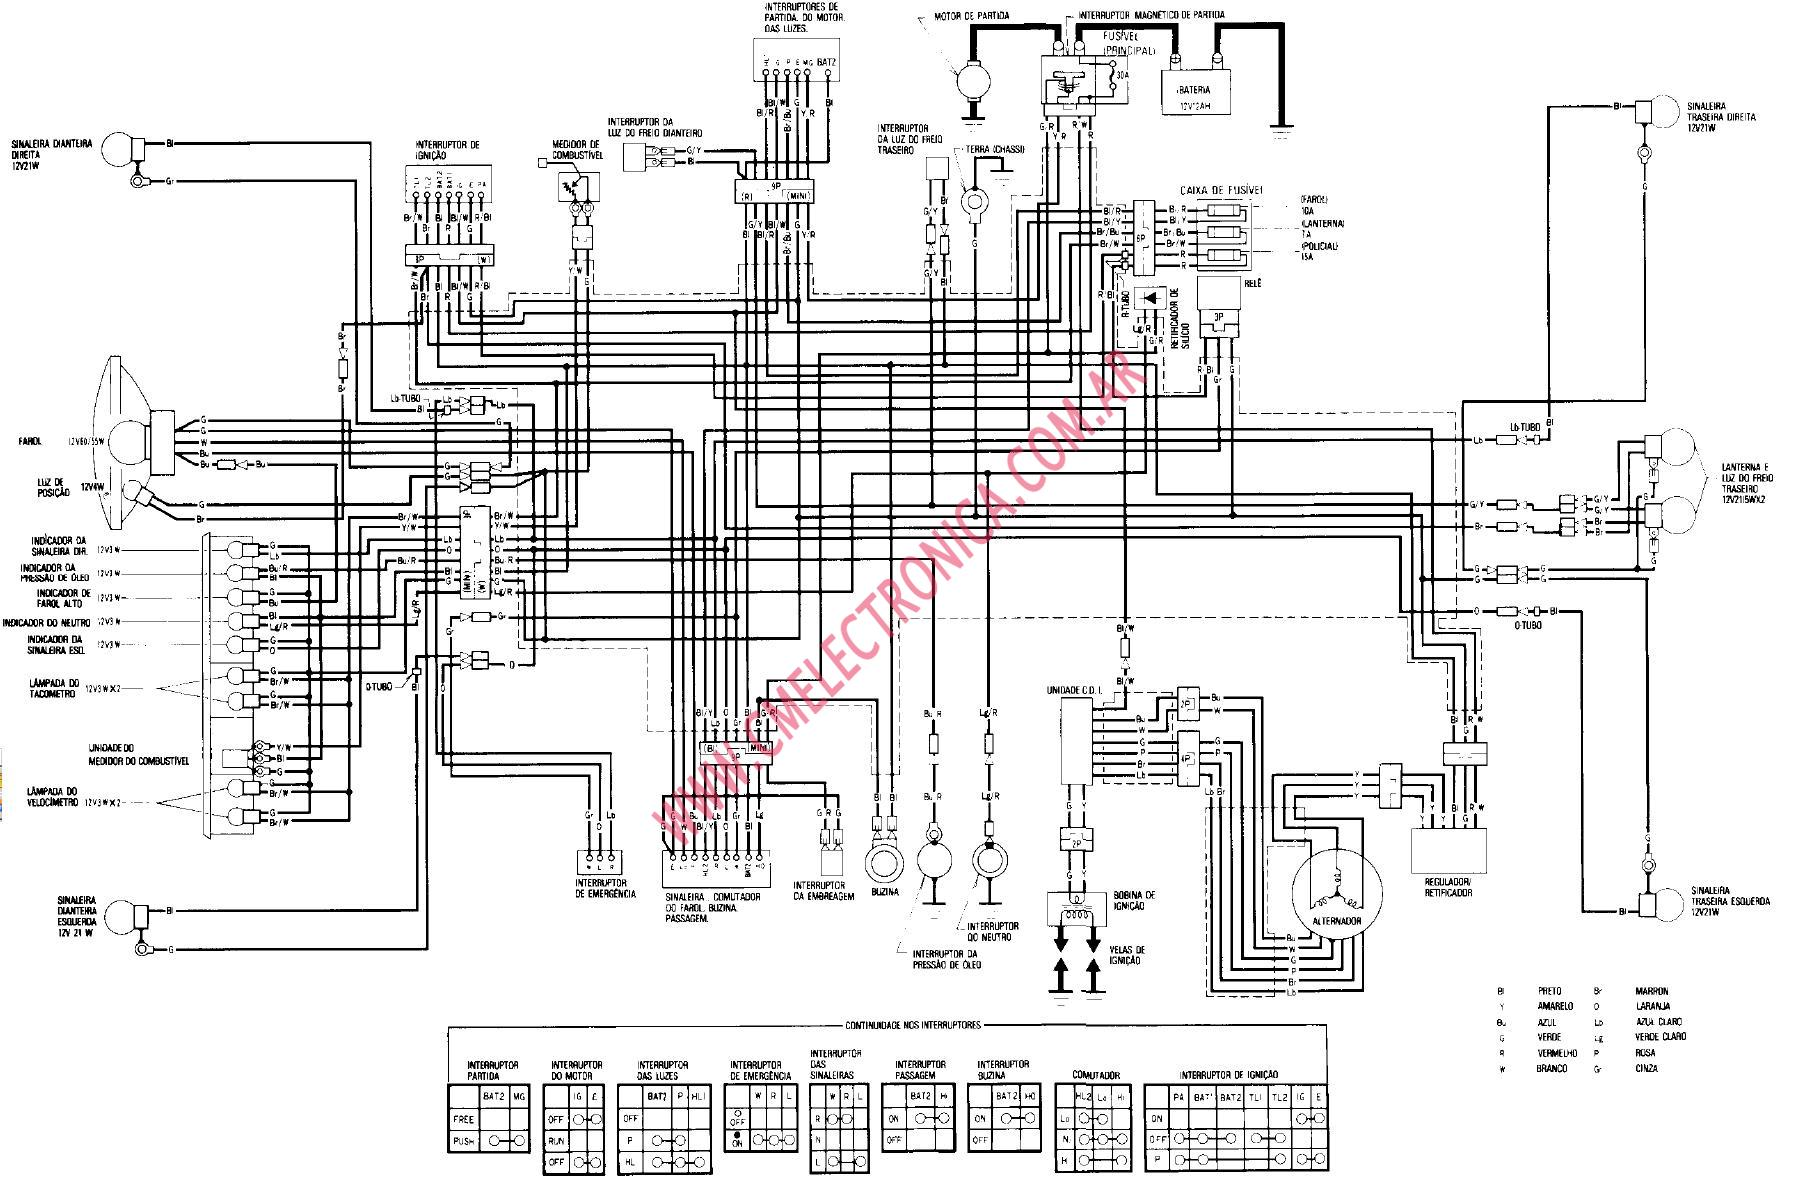 wiring diagram for gsxr 750  wiring  free engine image for